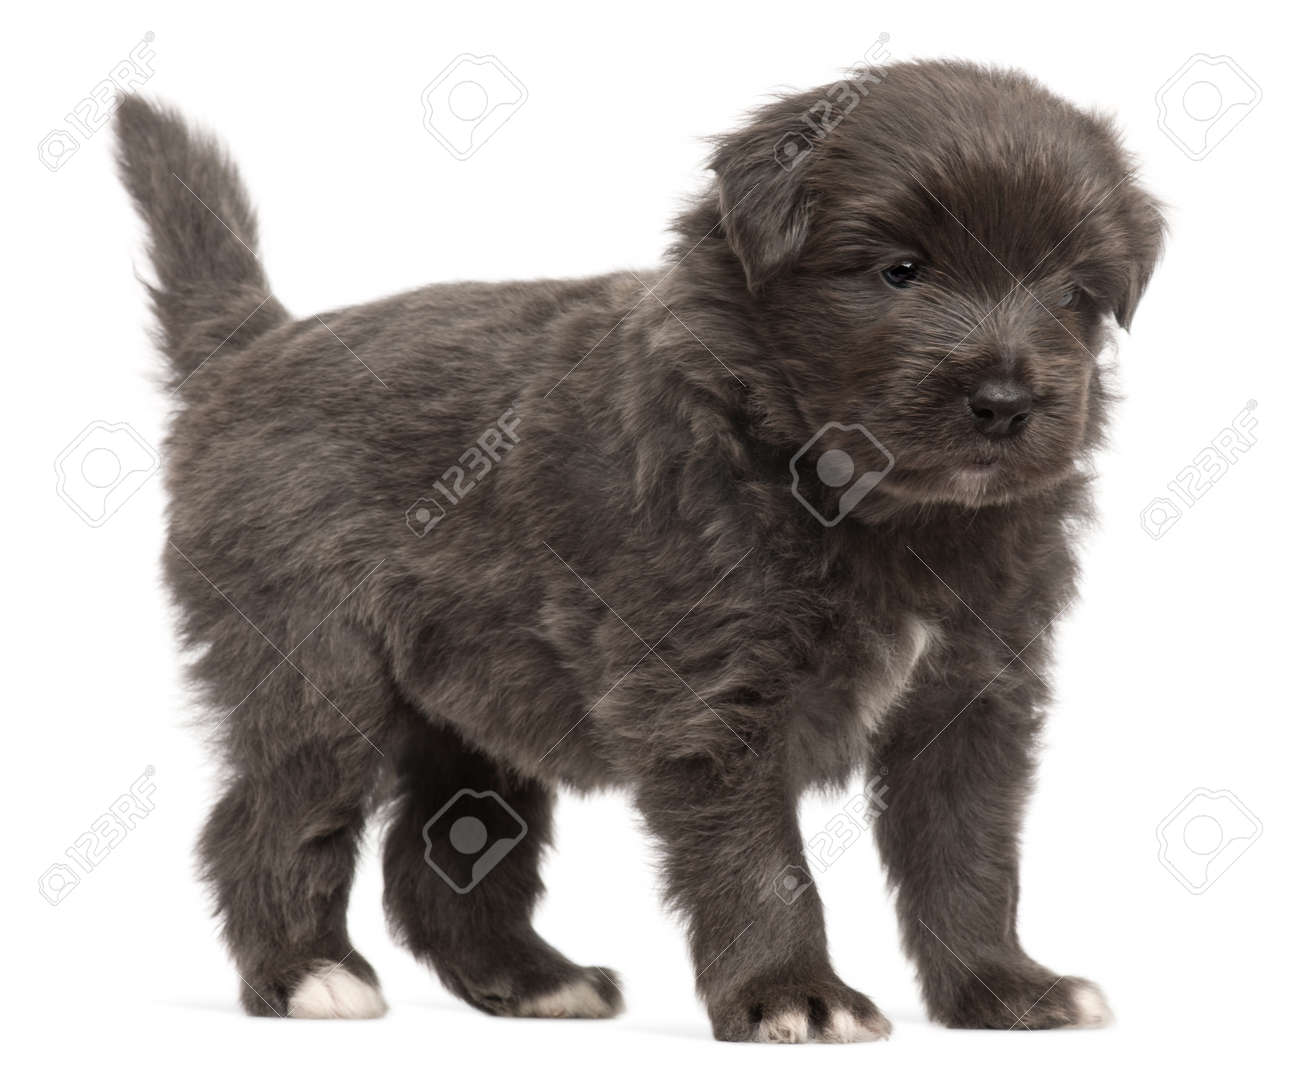 Pyrenean Shepherd puppy, 4 weeks old, in front of white background Stock Photo - 9563887